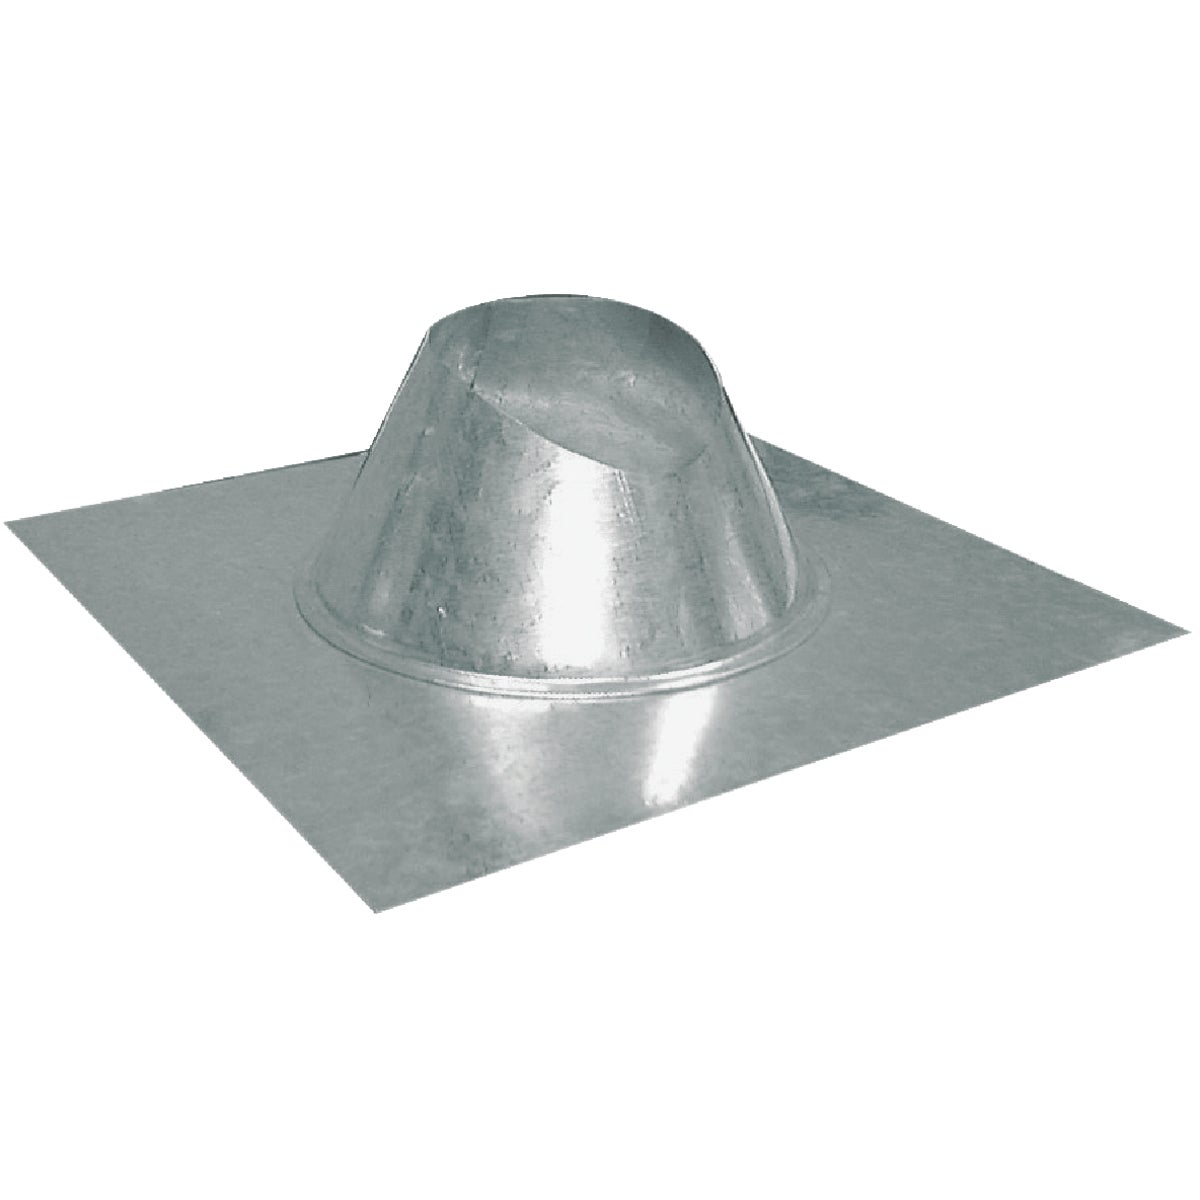 "3"" GALV ROOF FLASHING"